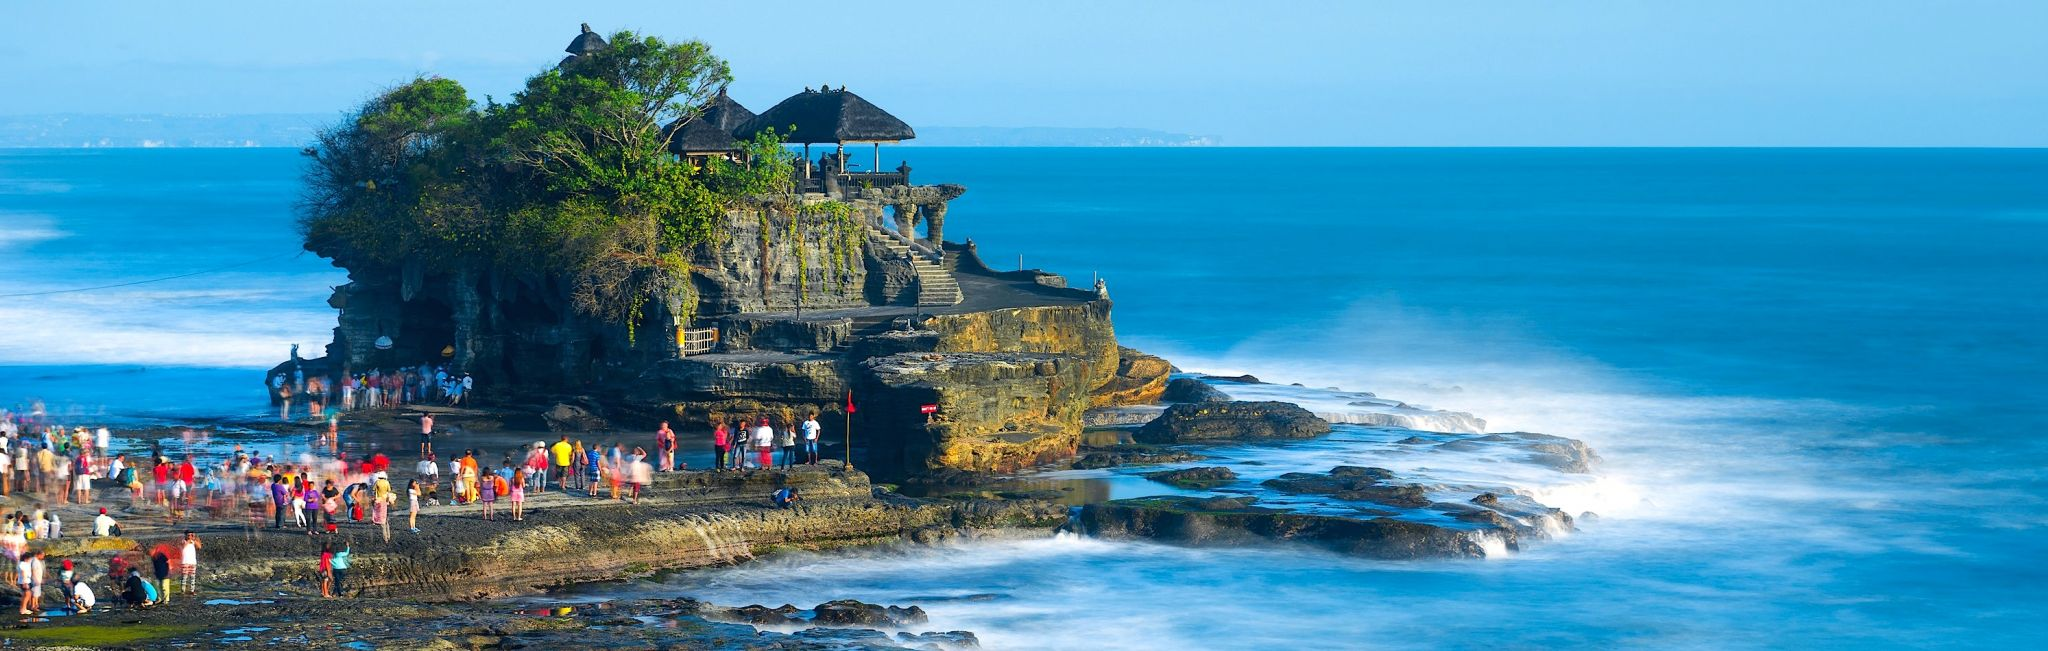 Bali Vacation Packages 2018 2019 Bali Tours Amp Vacations Zicasso